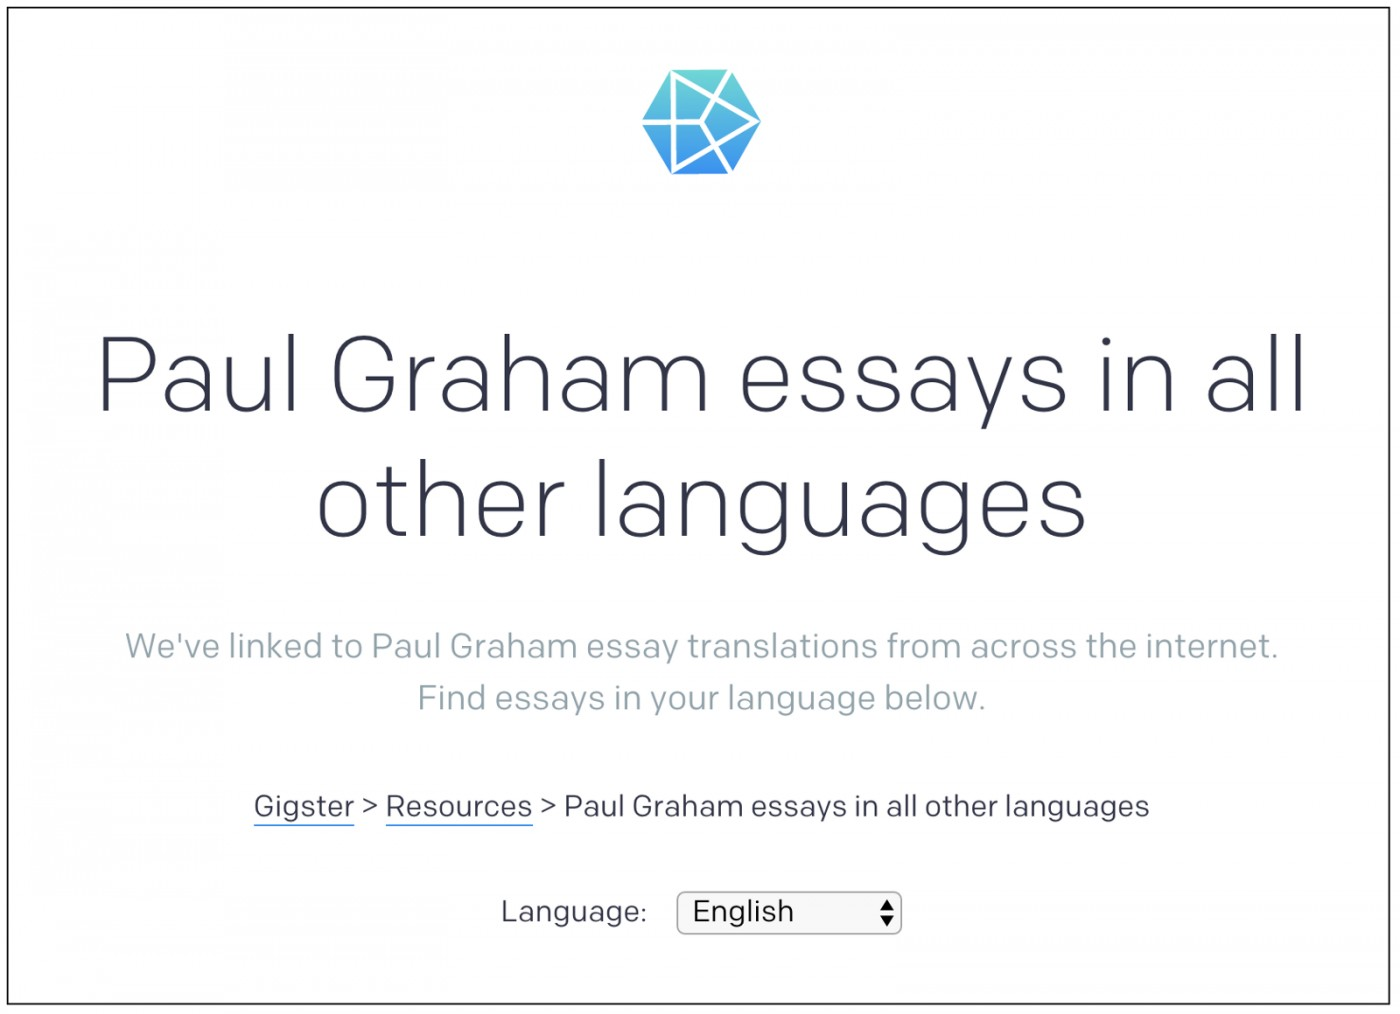 003 Paul Graham Essays 0heyqp1amec9loyjb Essay Awesome Kindle Maker's Schedule Silicon Valley 1400